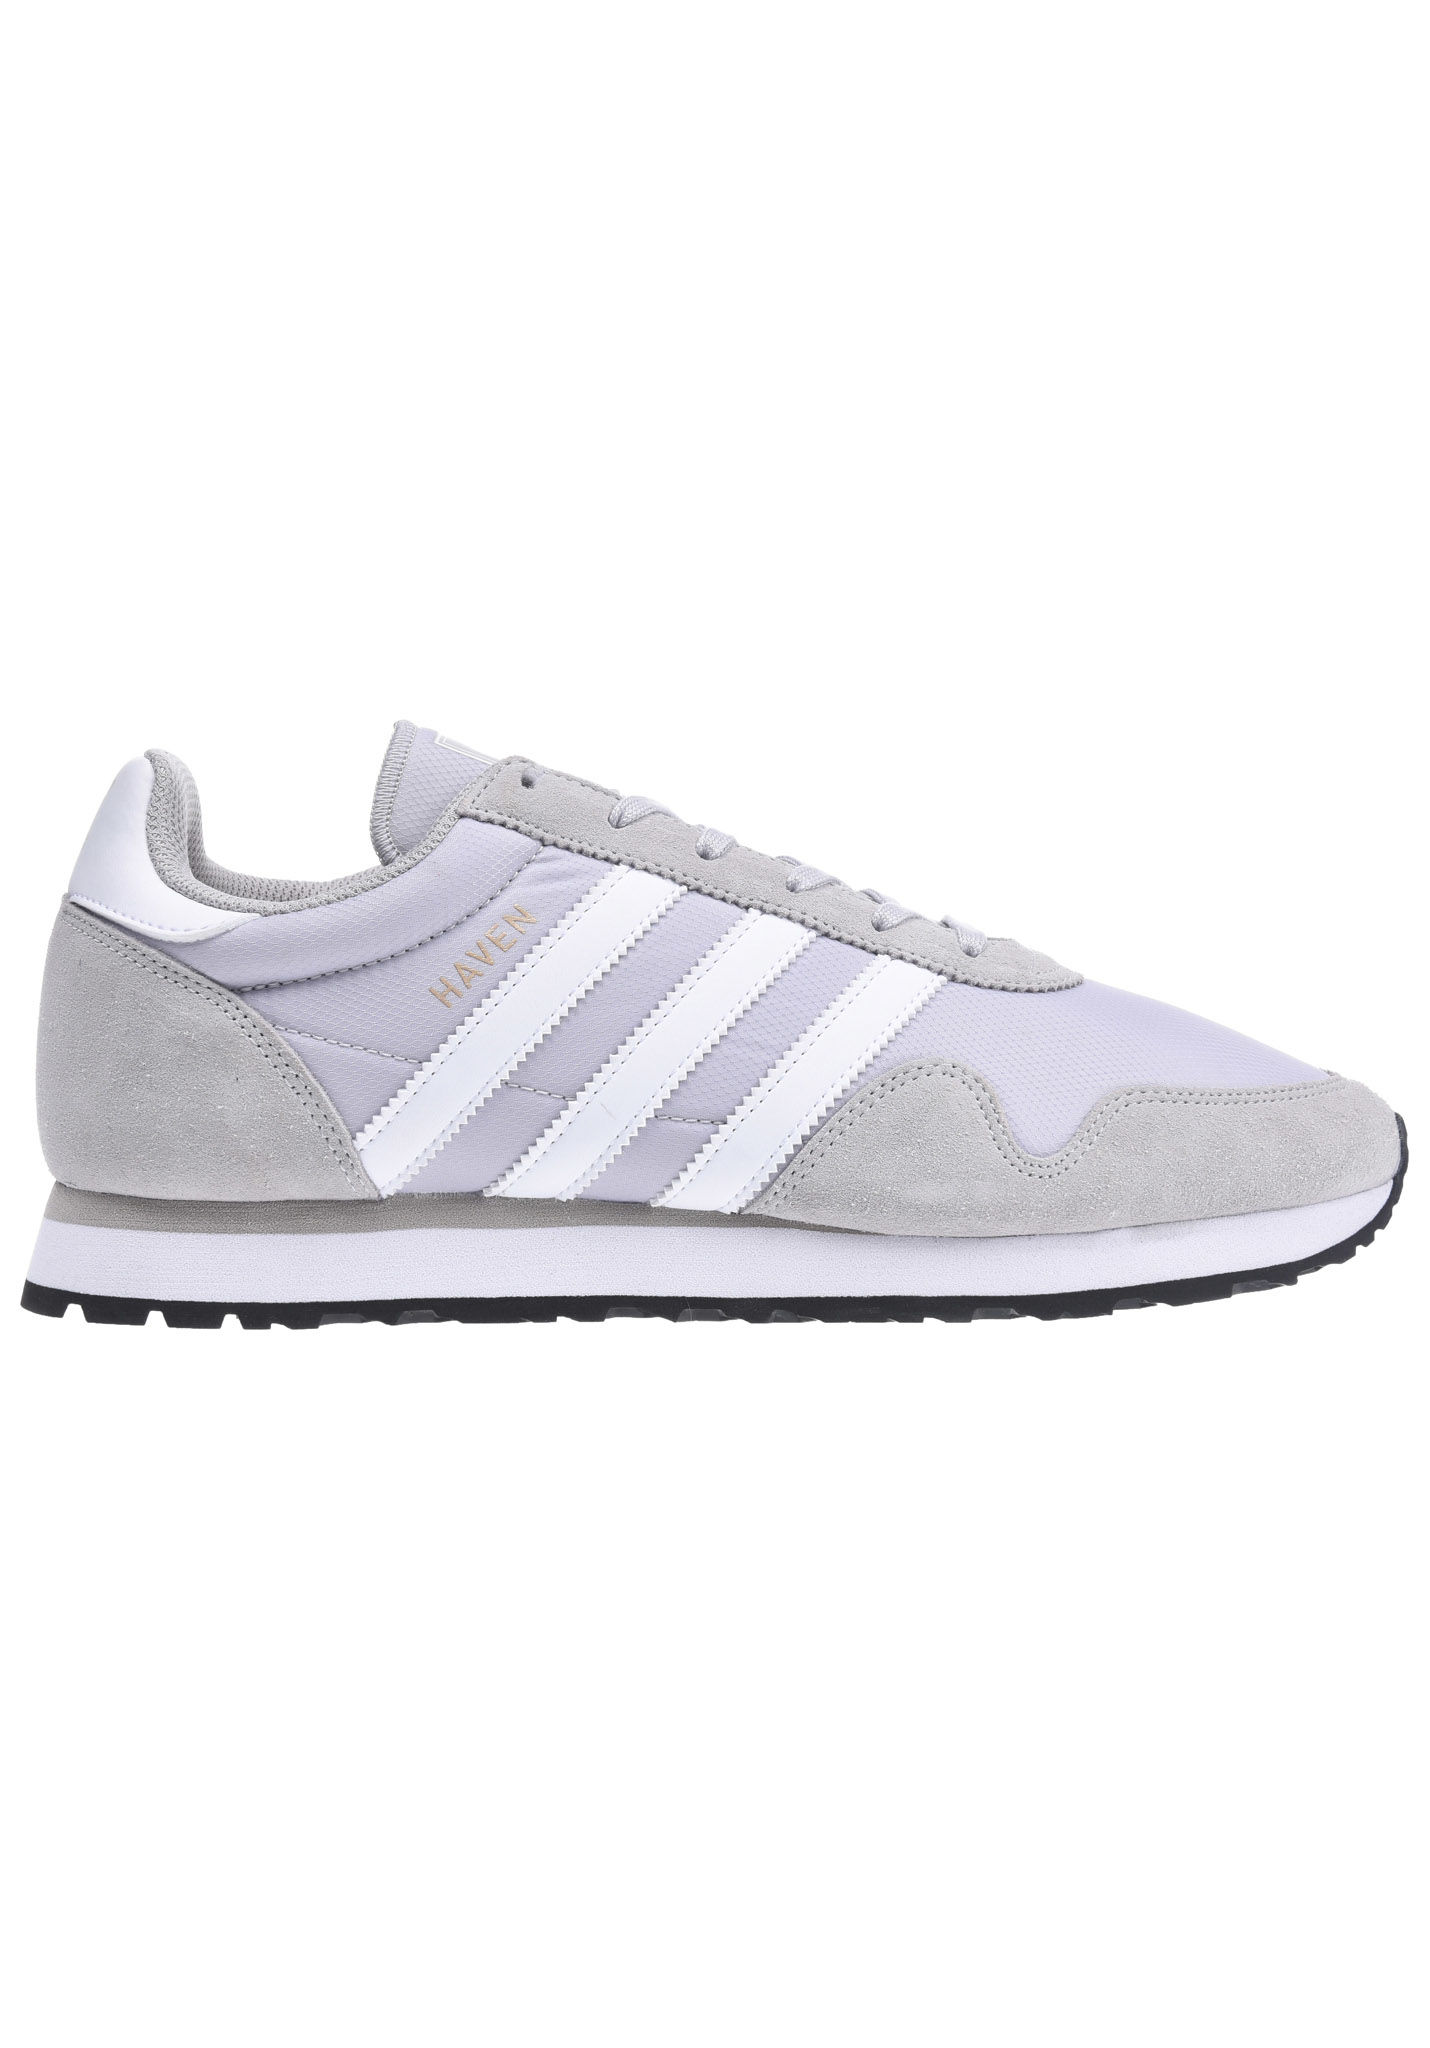 Grau Sneaker Für Herren Adidas Haven Originals HI9D2WE